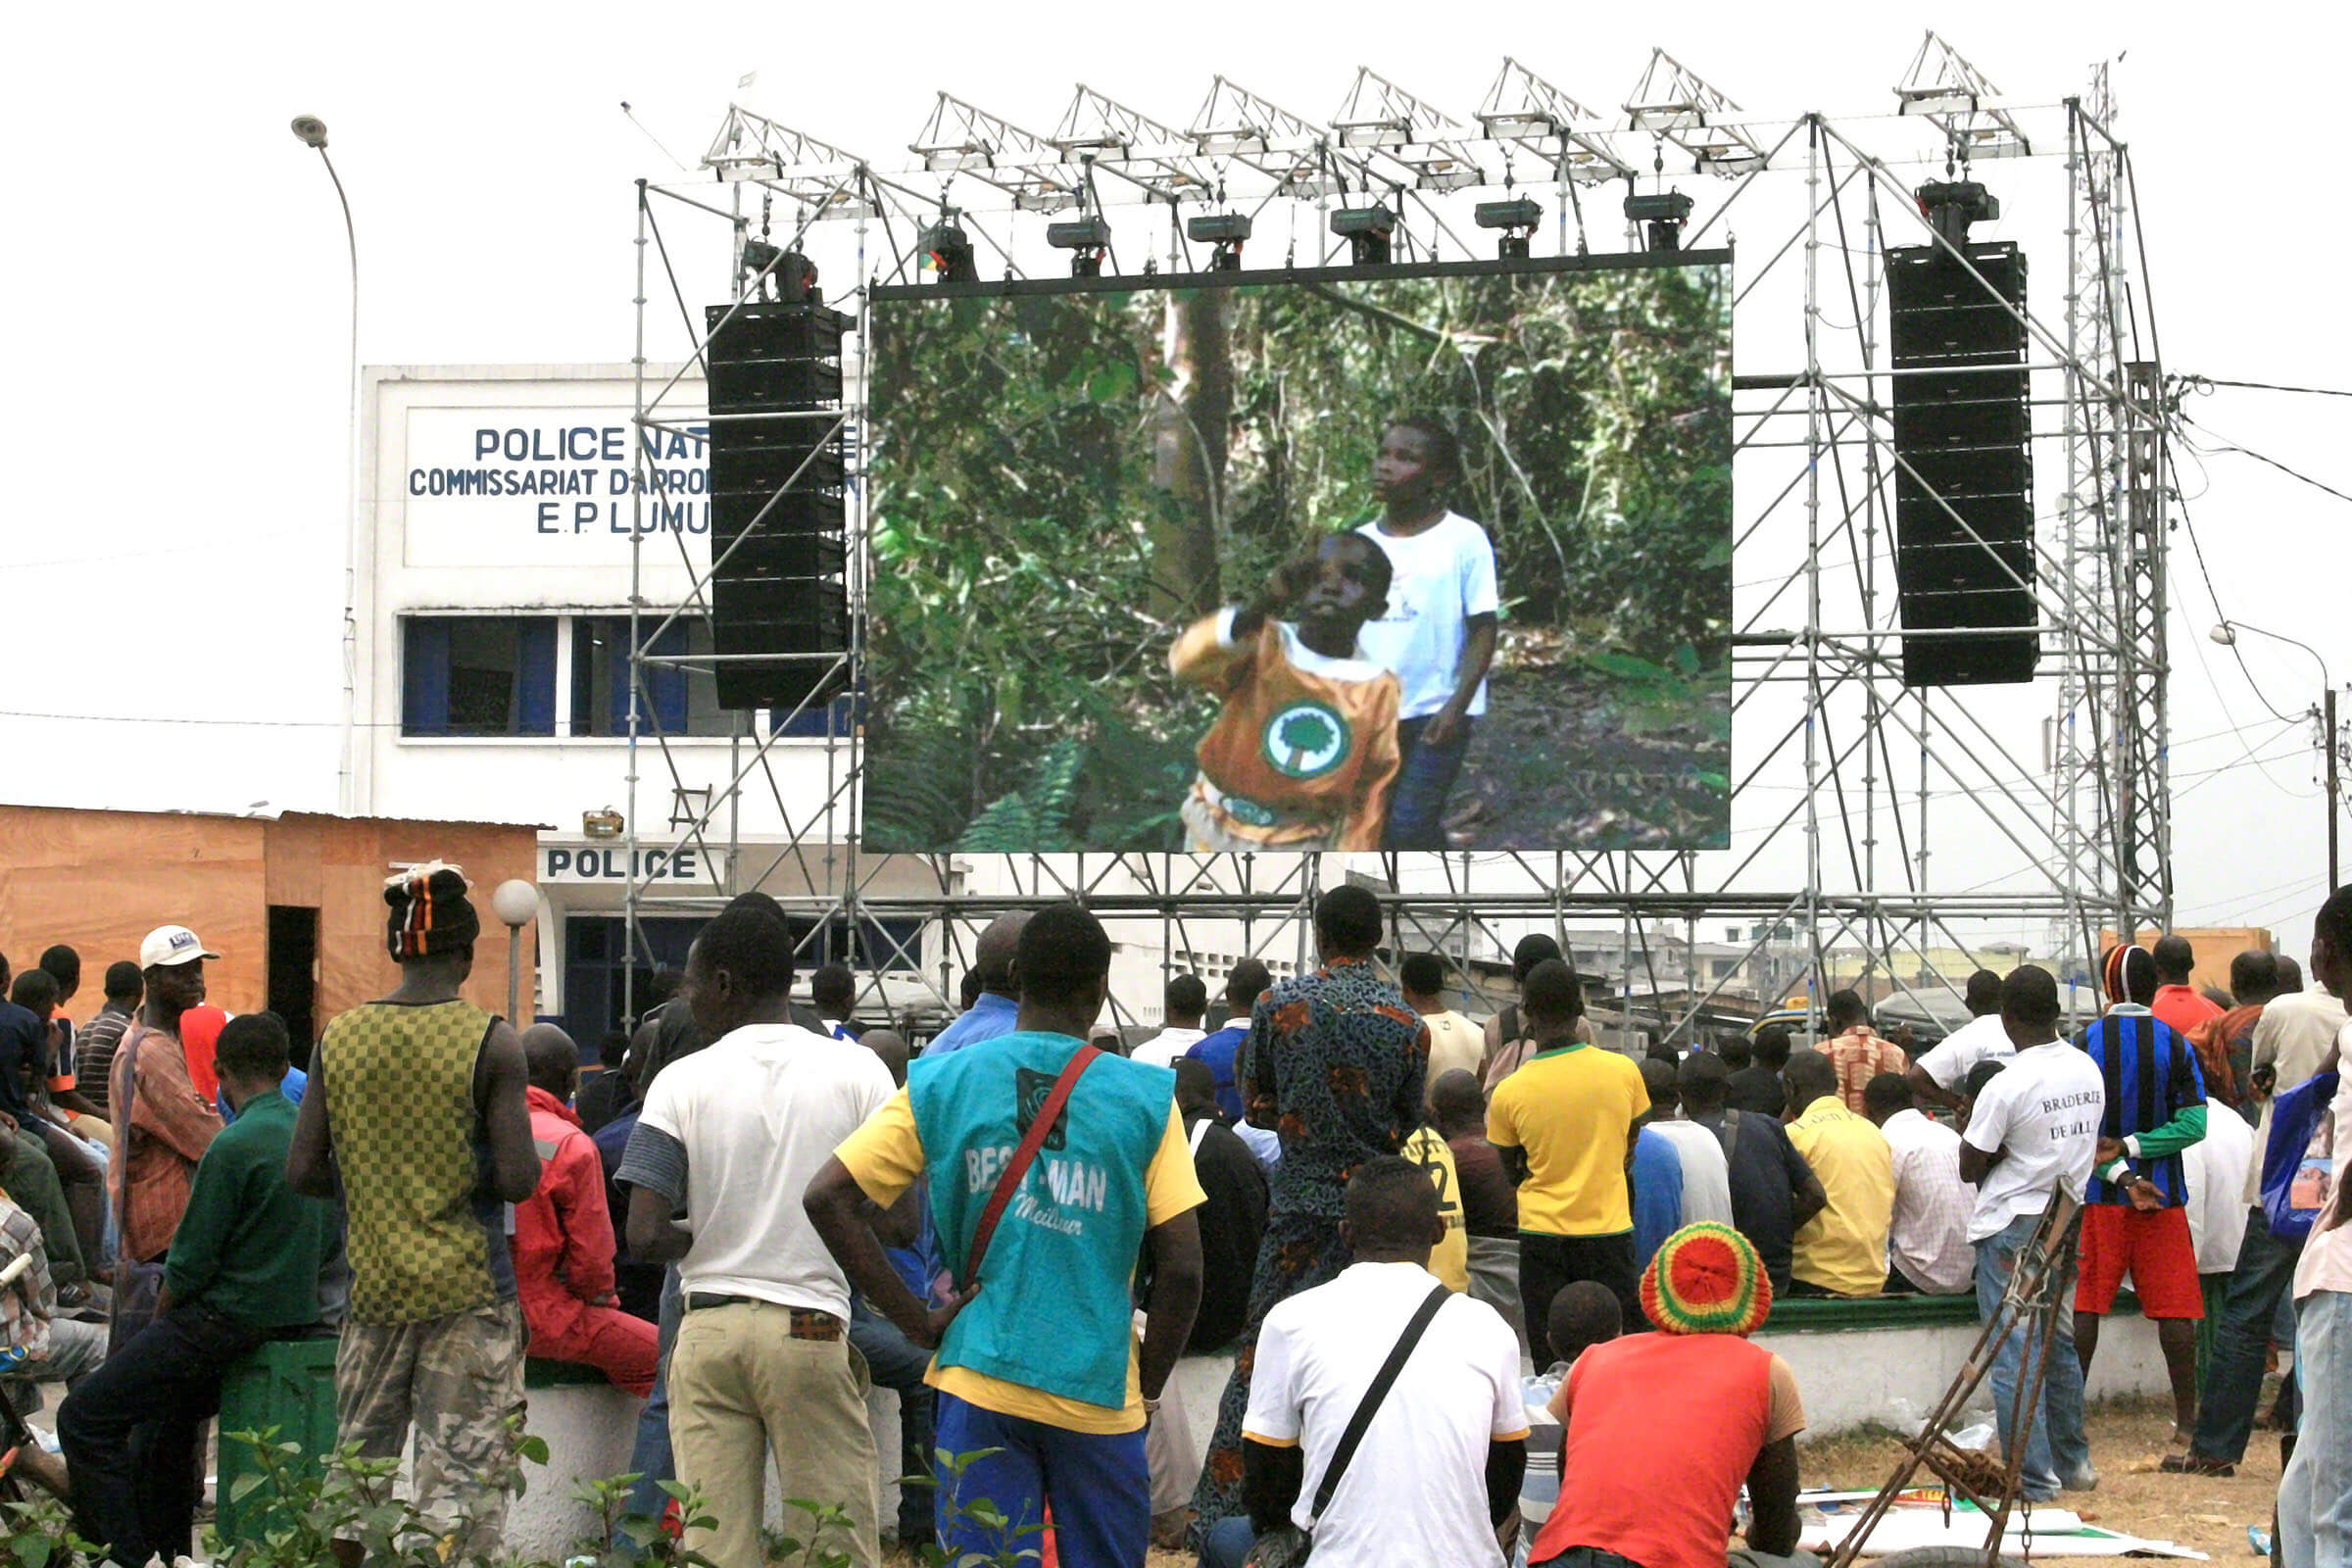 The Super Kodo TV show is broadcast on a big screen in Pointe Noire, Republic of Congo